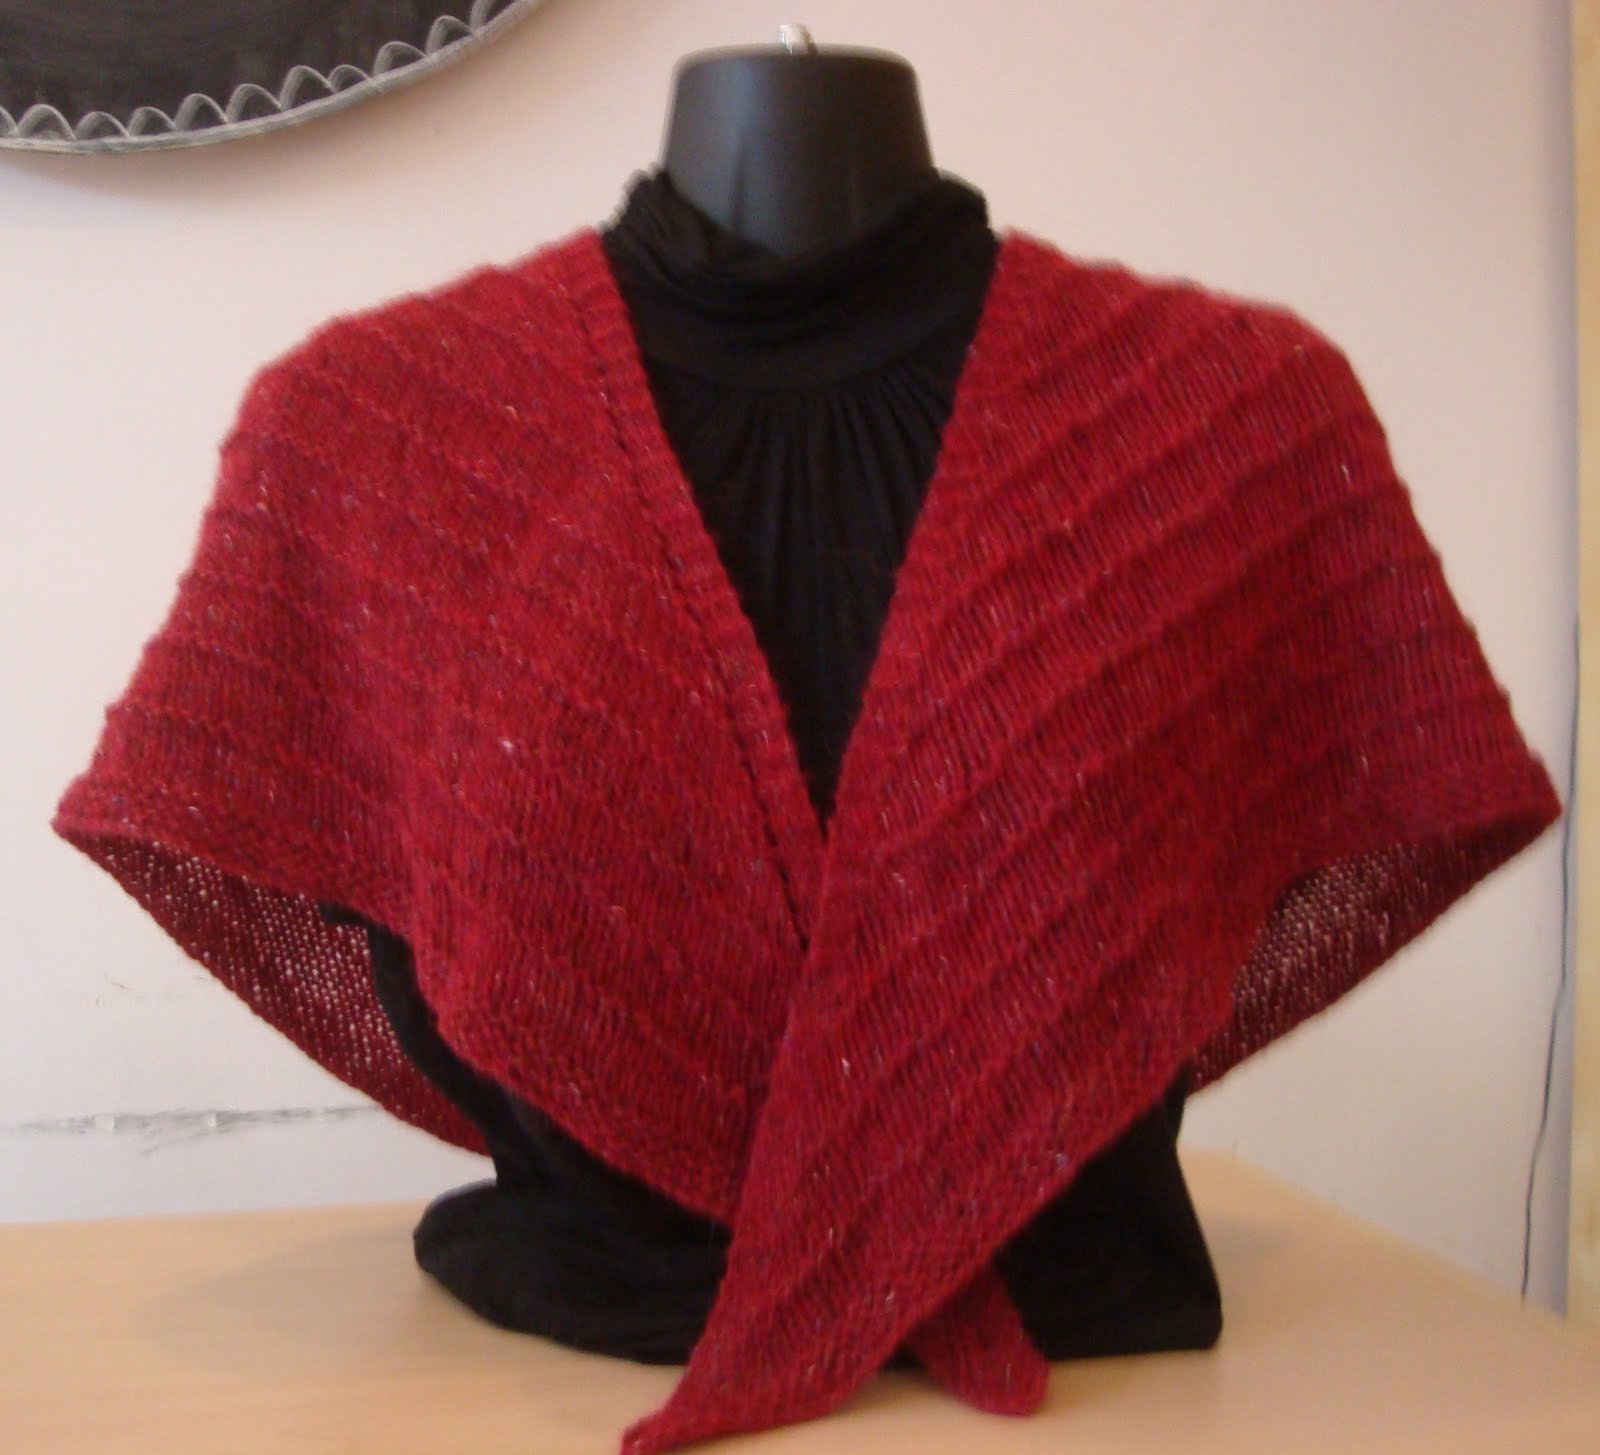 Knitted Shawl Patterns Free : Triangle Shawl Free Pattern   Design Patterns